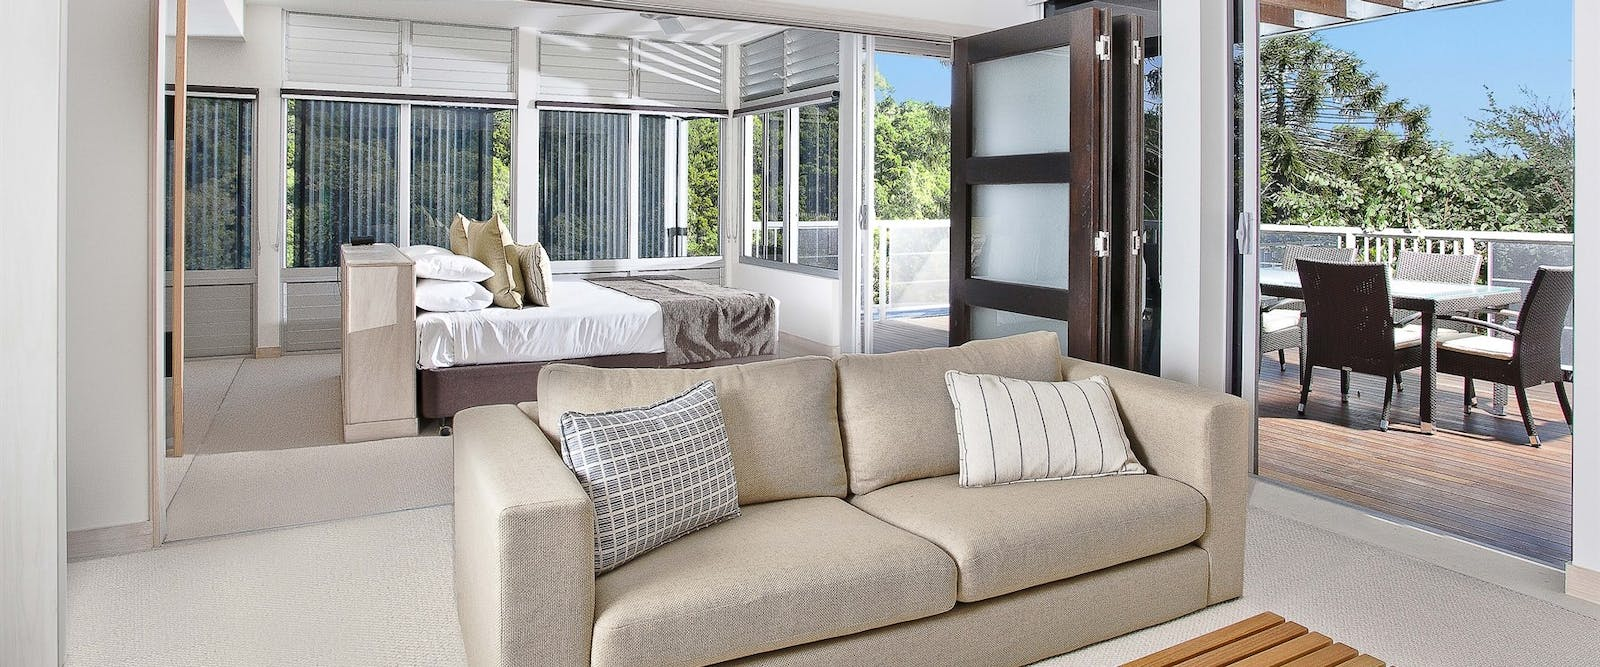 Three bedroom deluxe villas lounge, Peppers Noosa Resort and Villas